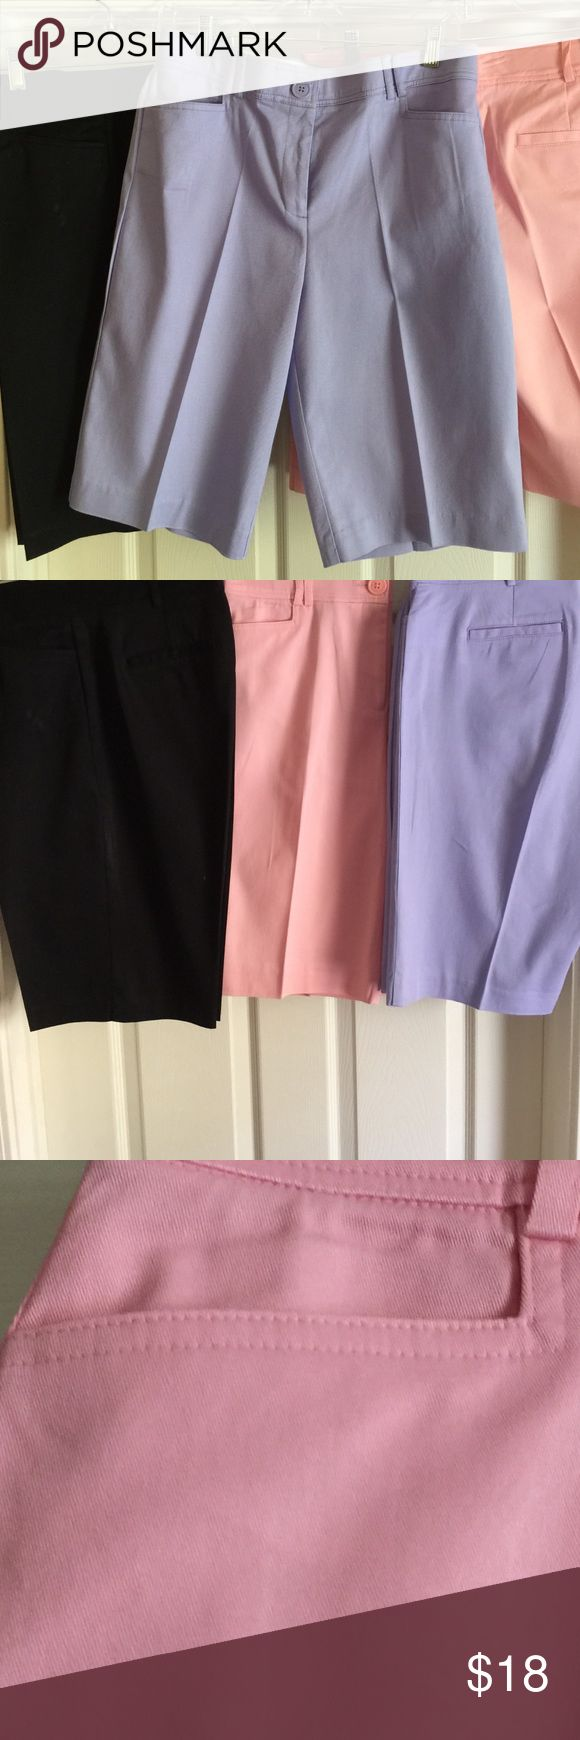 Counterparts Knee Length Shorts 3 Different Colors Counterparts knee length shorts in Black, Pink and Lavender Flat Front 97% Cotton 3% Spandex $18 each Counterparts Shorts Skorts